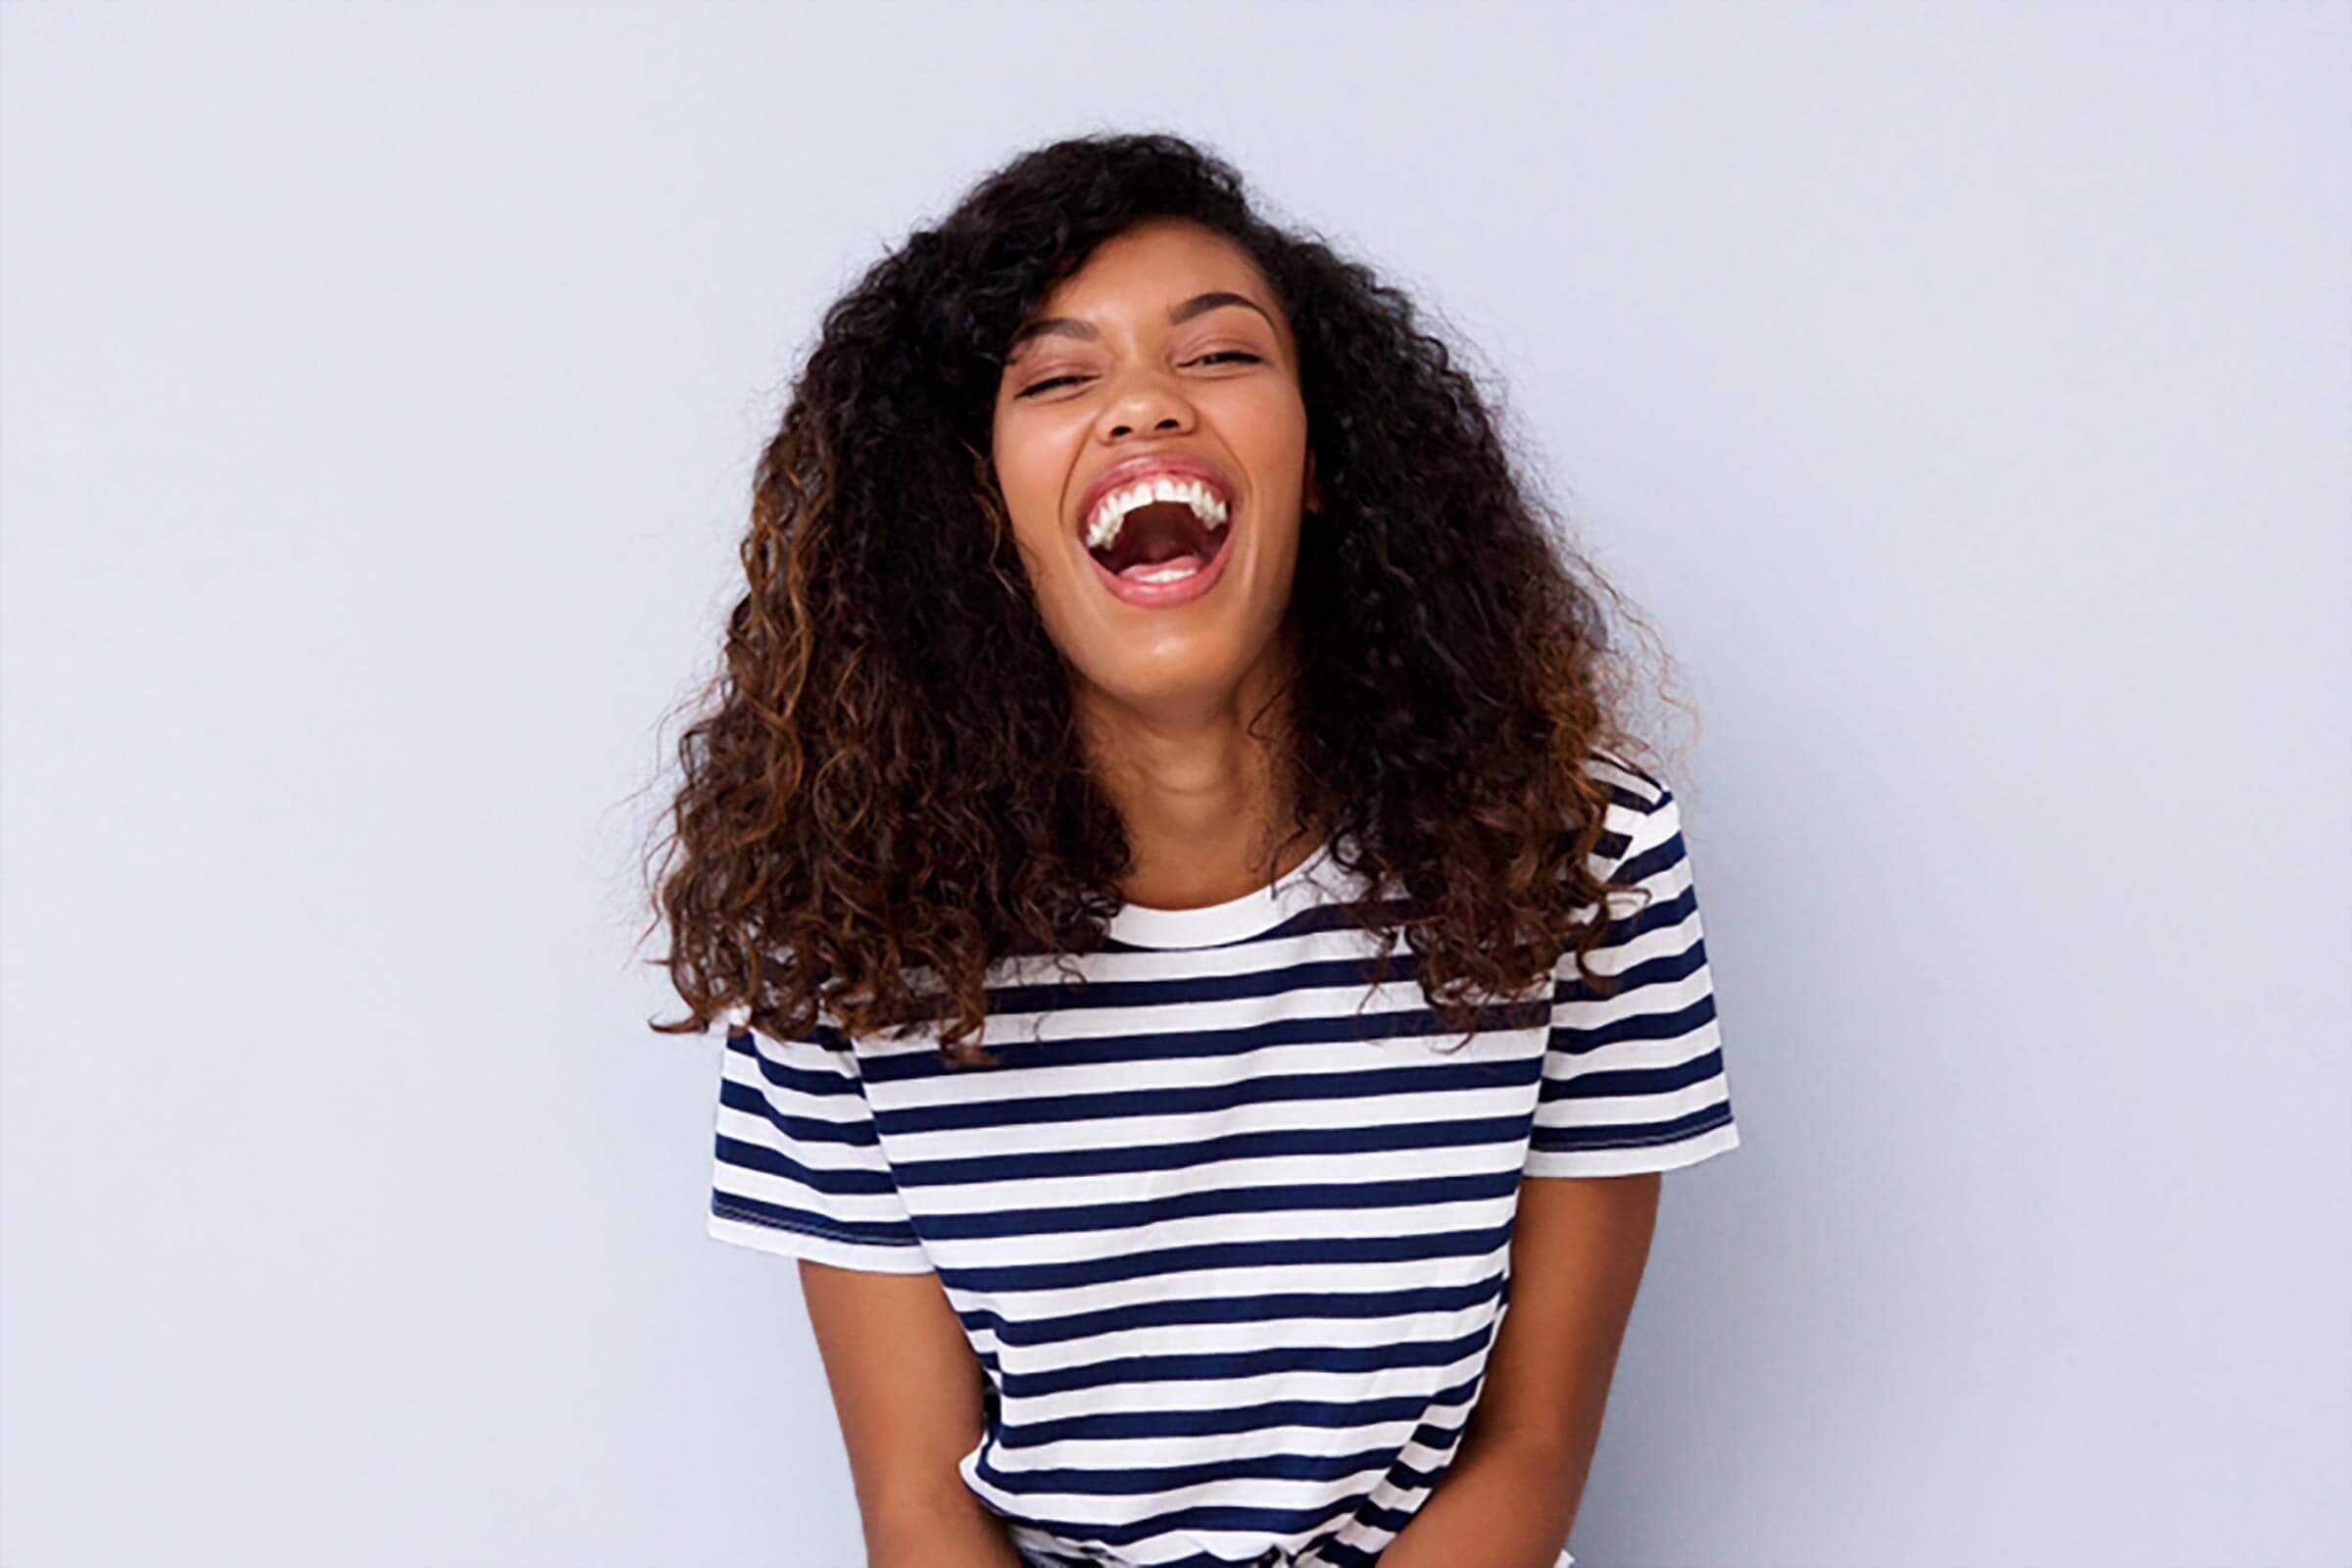 Portrait of young black woman laughing against gray wall